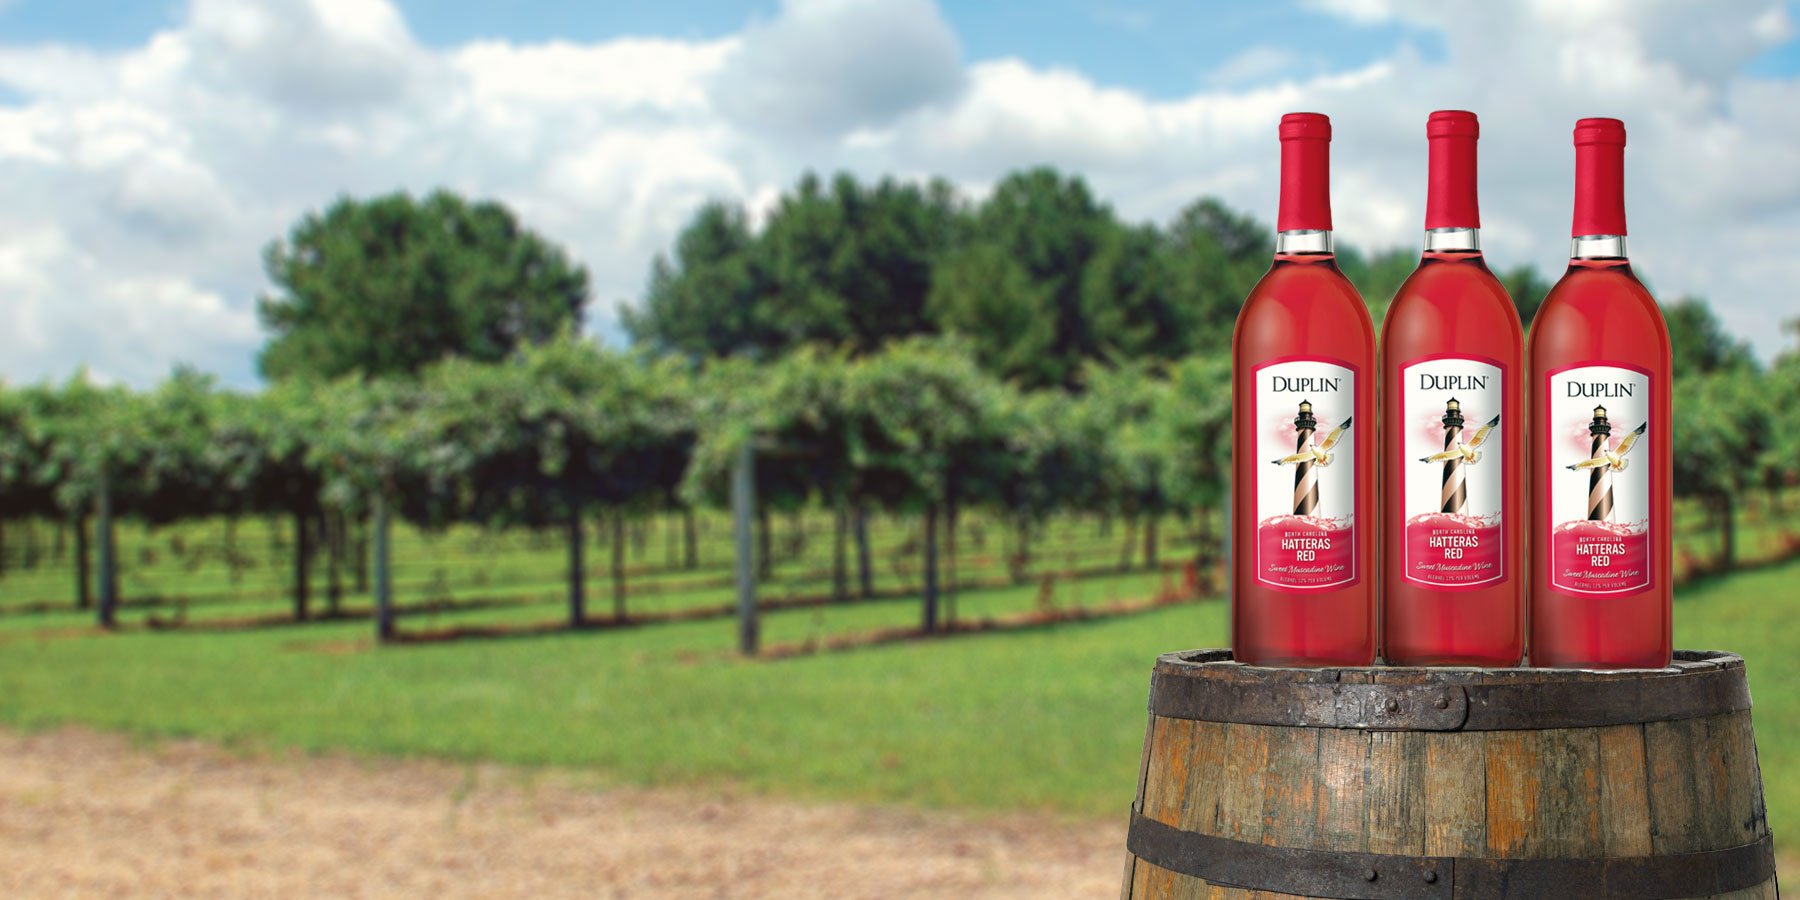 Hatteras Red, Duplin's most popular red wine, is sweet and fruity